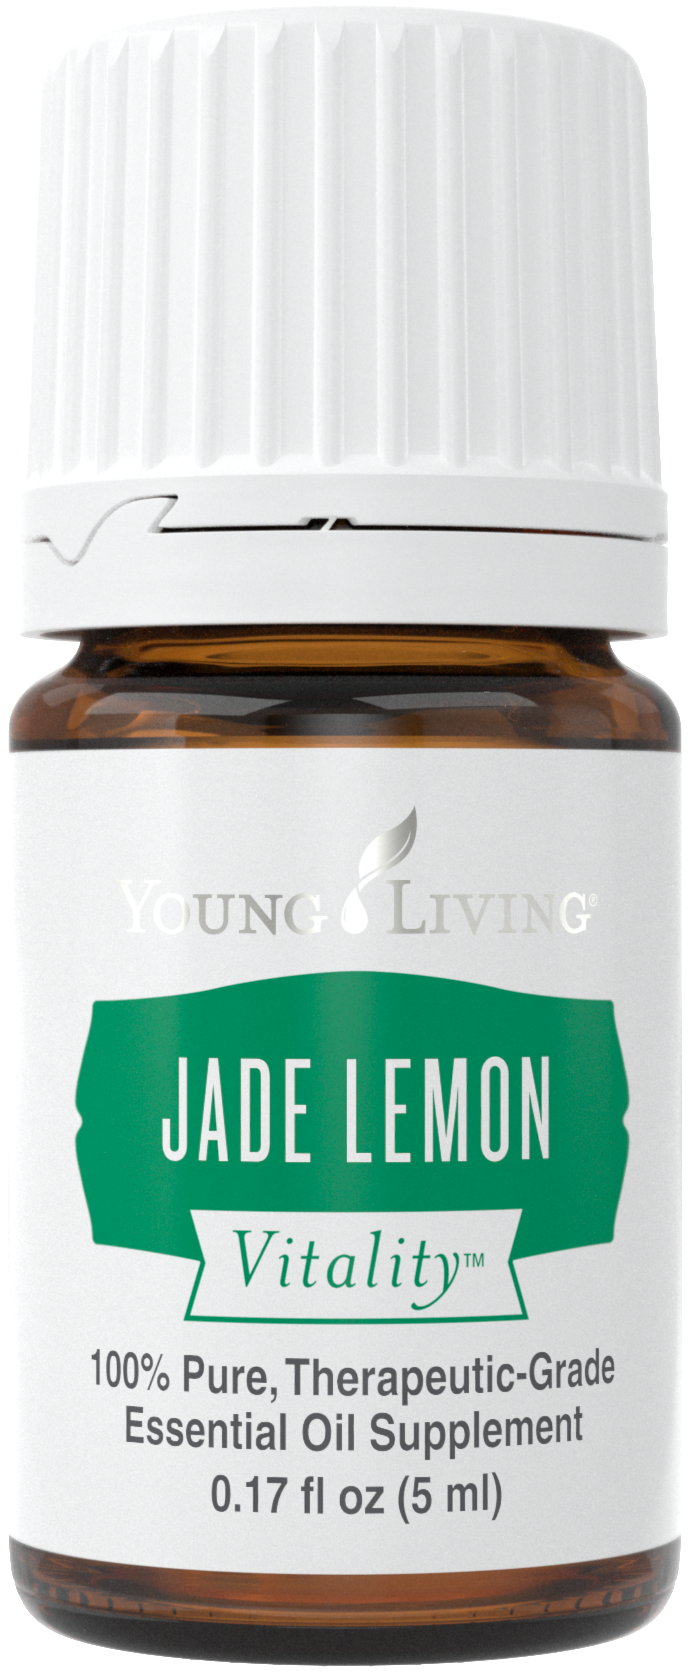 jadelemon_5ml_suplement_silo_2016_23775652033_o